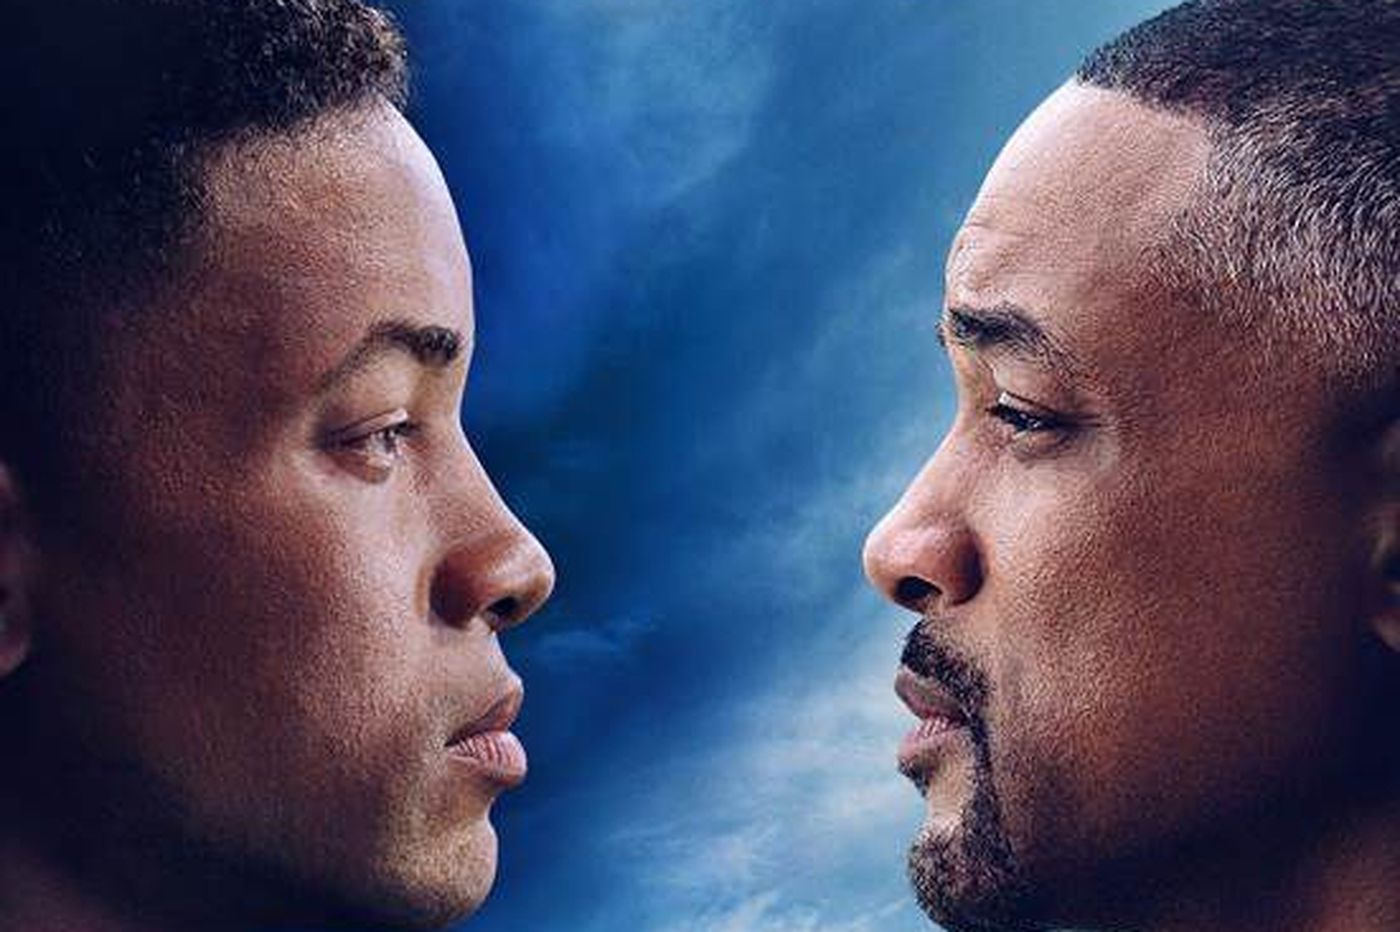 Will Smith plays himself at 50 and 23 in his new movie 'Gemini Man'